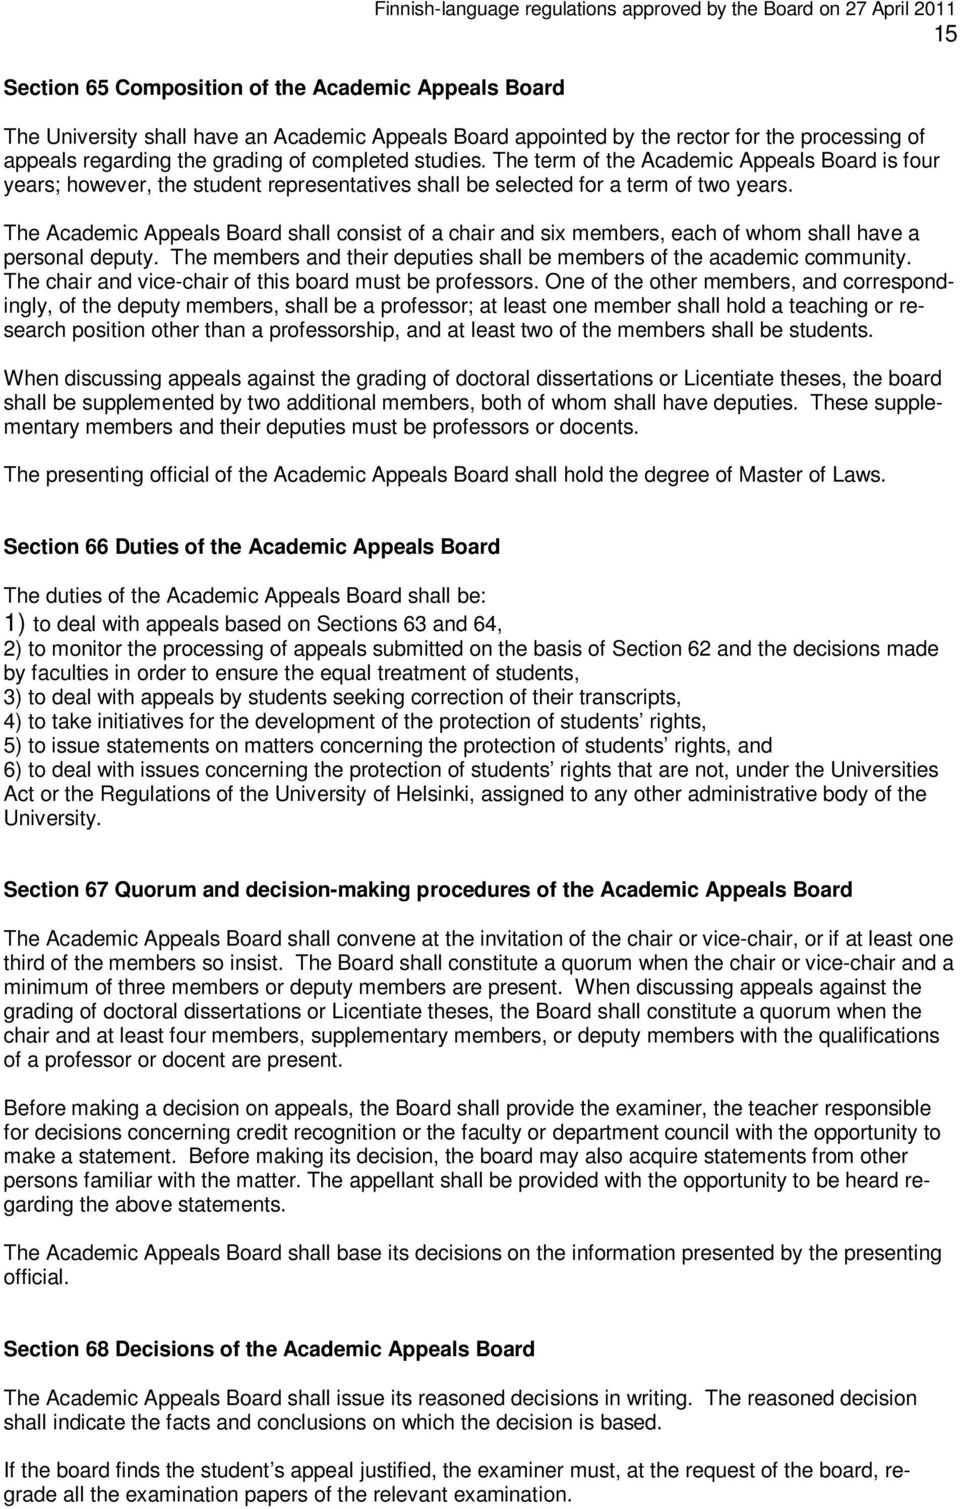 The term of the Academic Appeals Board is four years; however, the student representatives shall be selected for a term of two years.